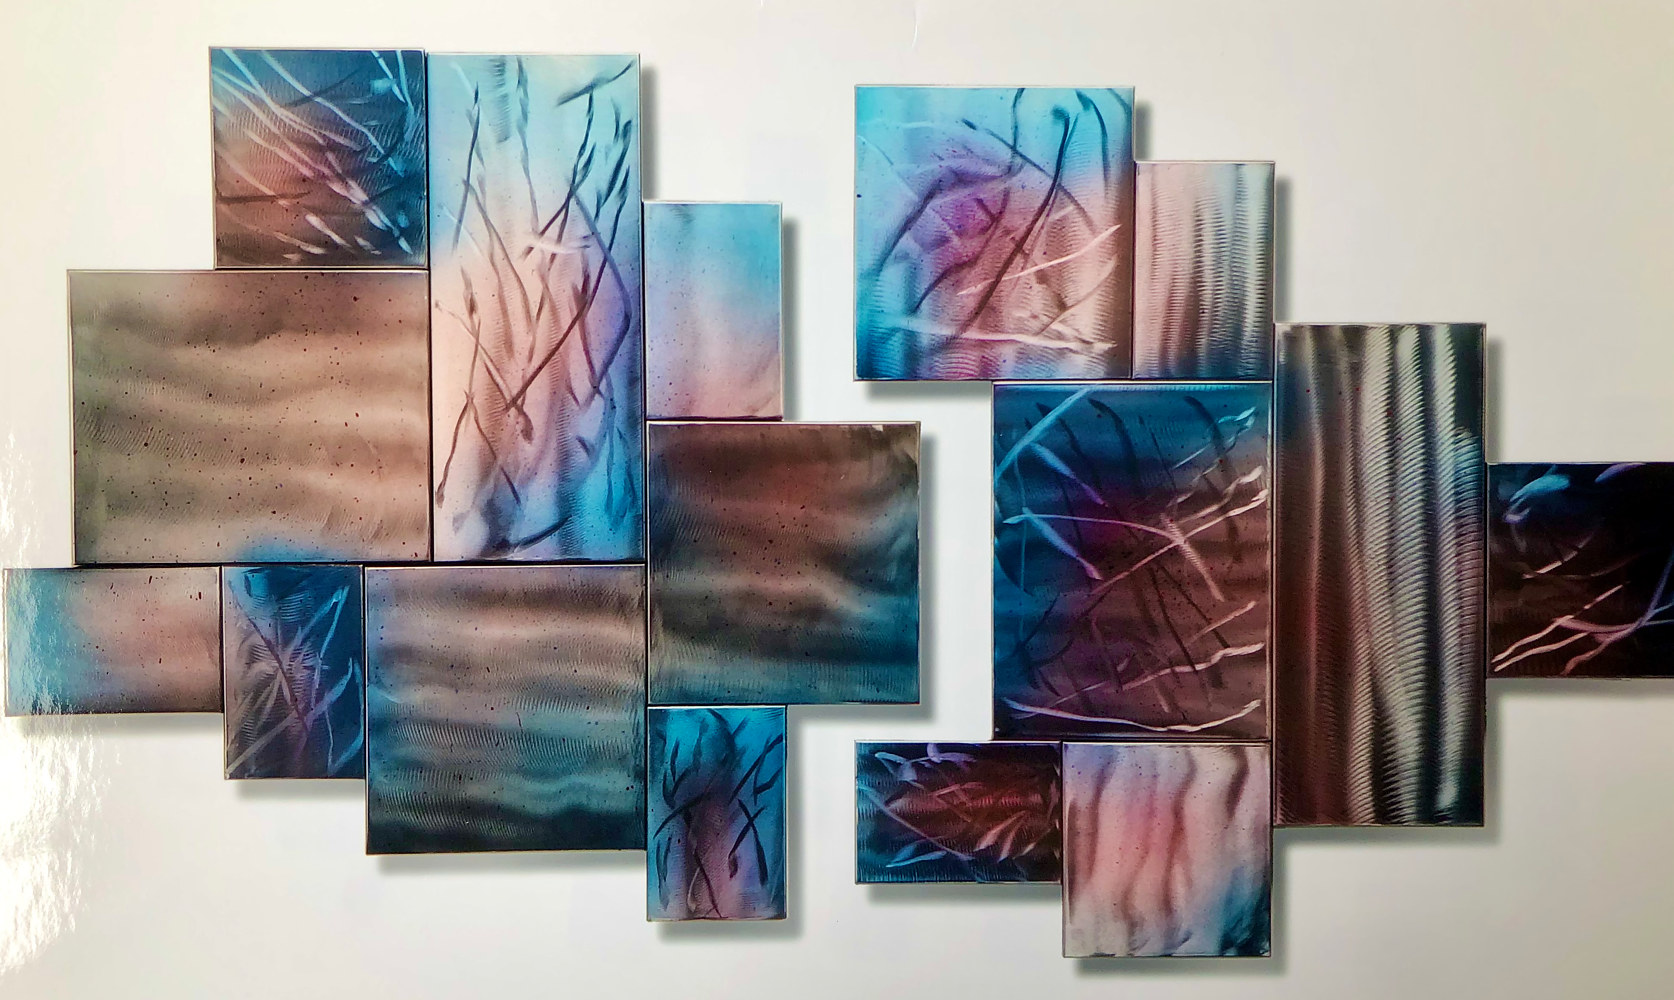 Shimmer-2set-48x3x26wall2004 by Linnie (Victoria) Aikens Lindsay